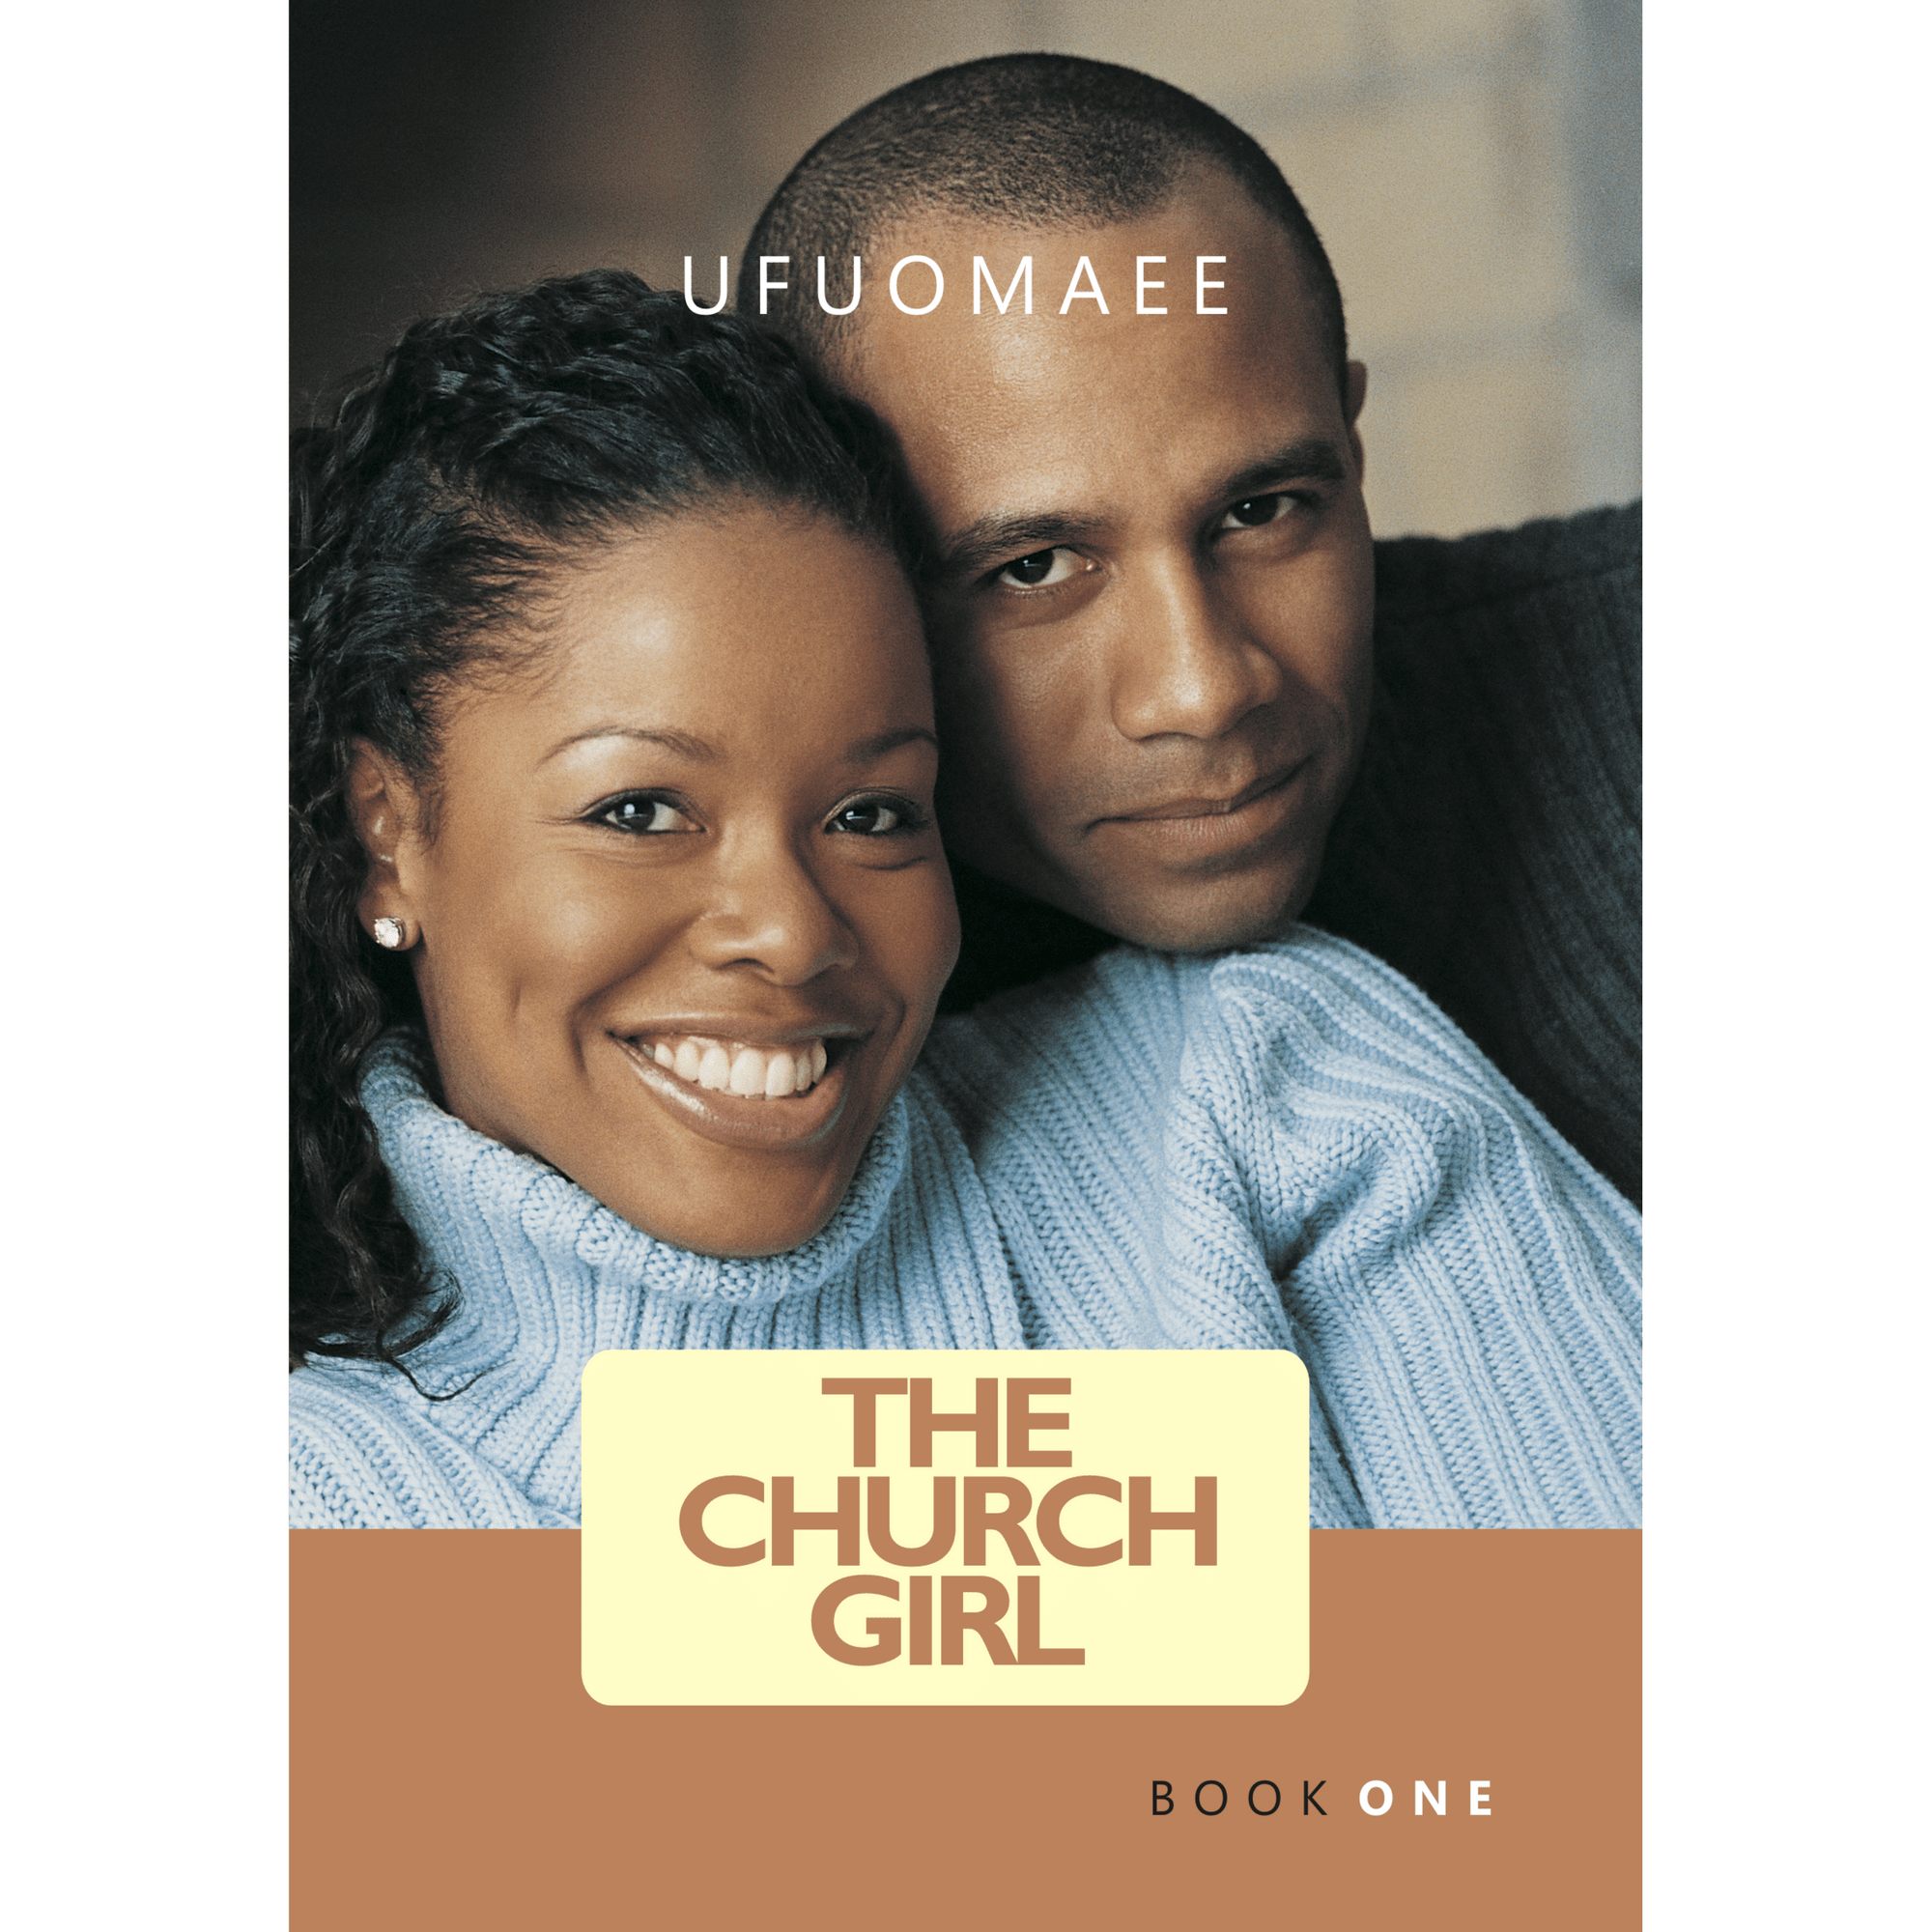 Get Book One of The Church Girl from Okadabooks